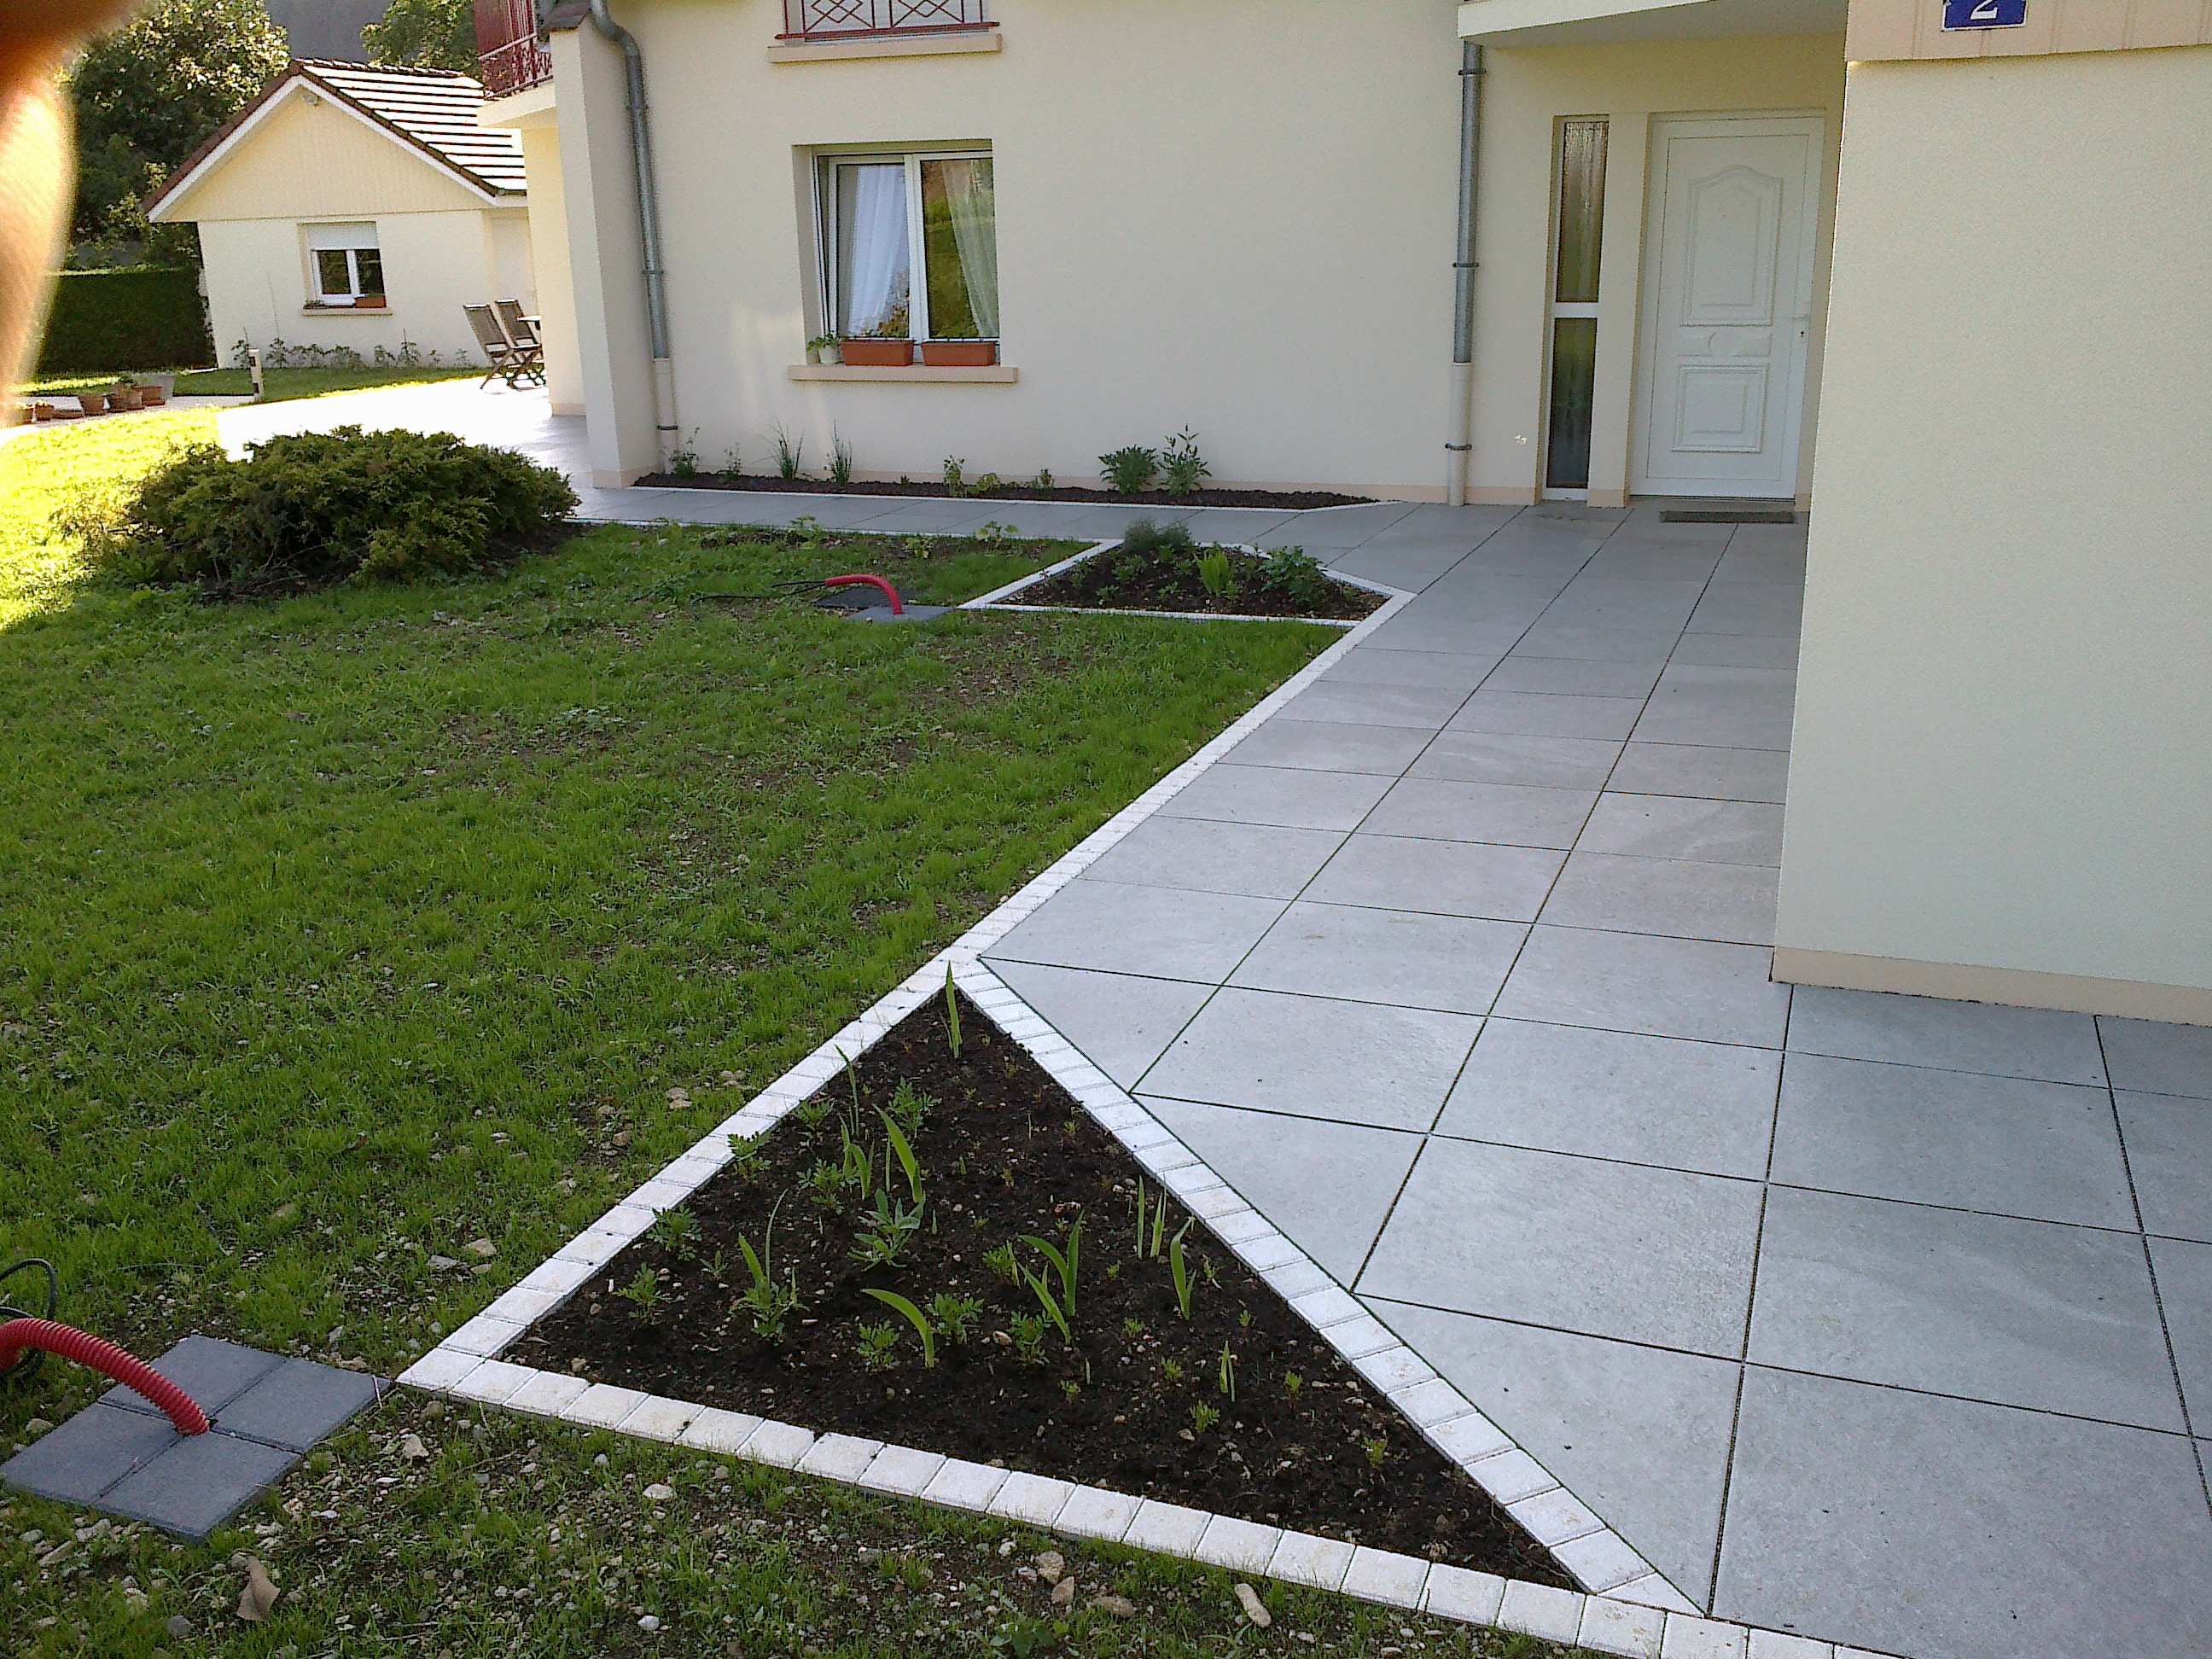 Bordure cassard for Bordure de terrasse en galet